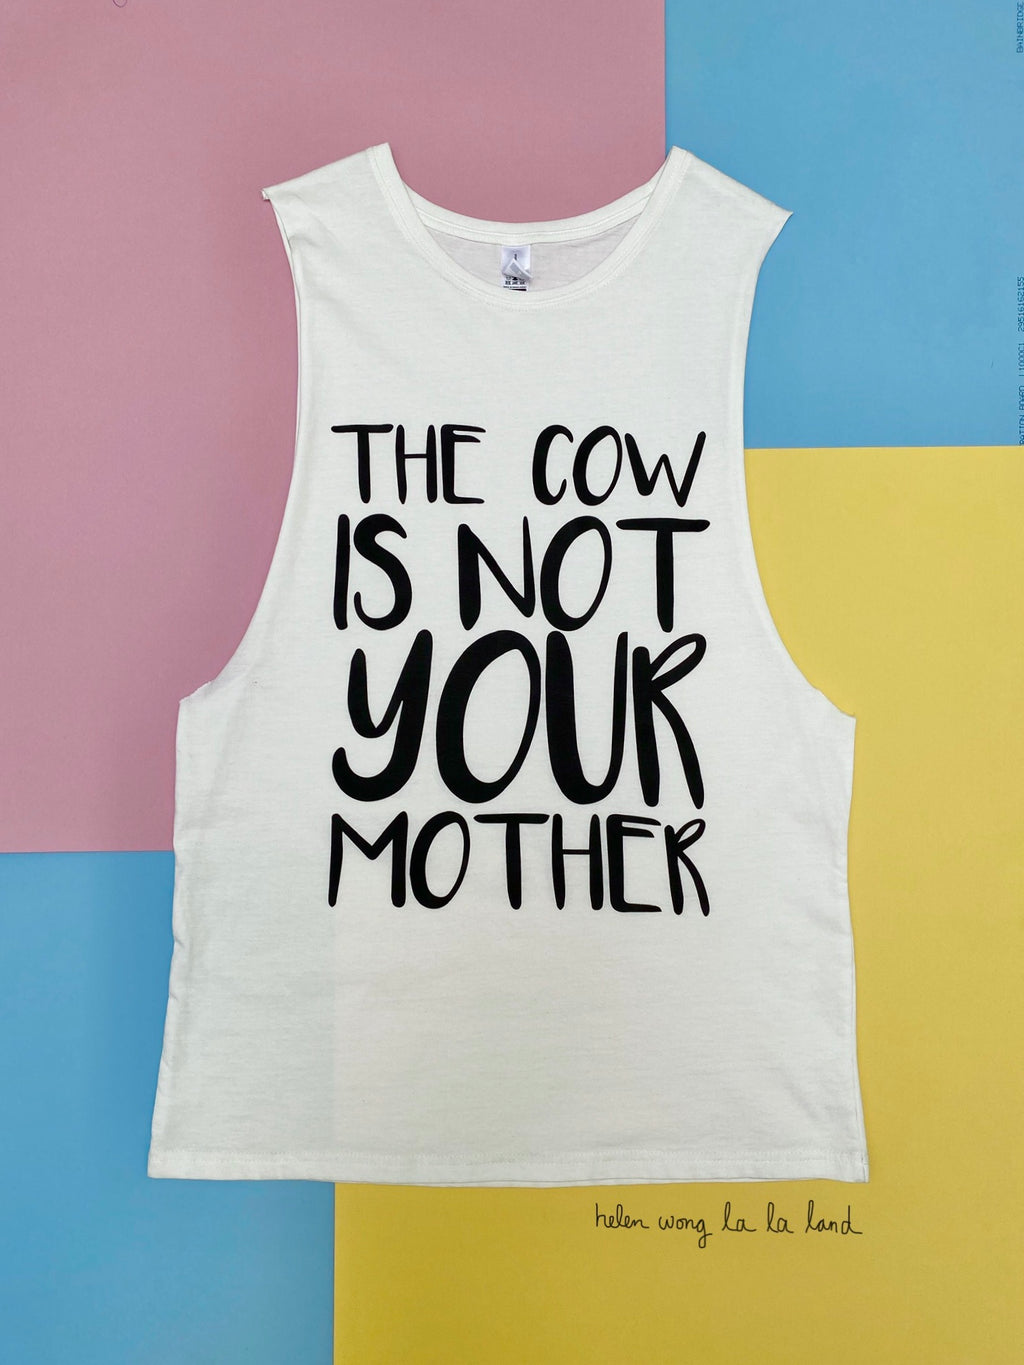 (S/S 2020) The Cow Is Not Your Mother sleeveless tee in CREAM ORGANIC